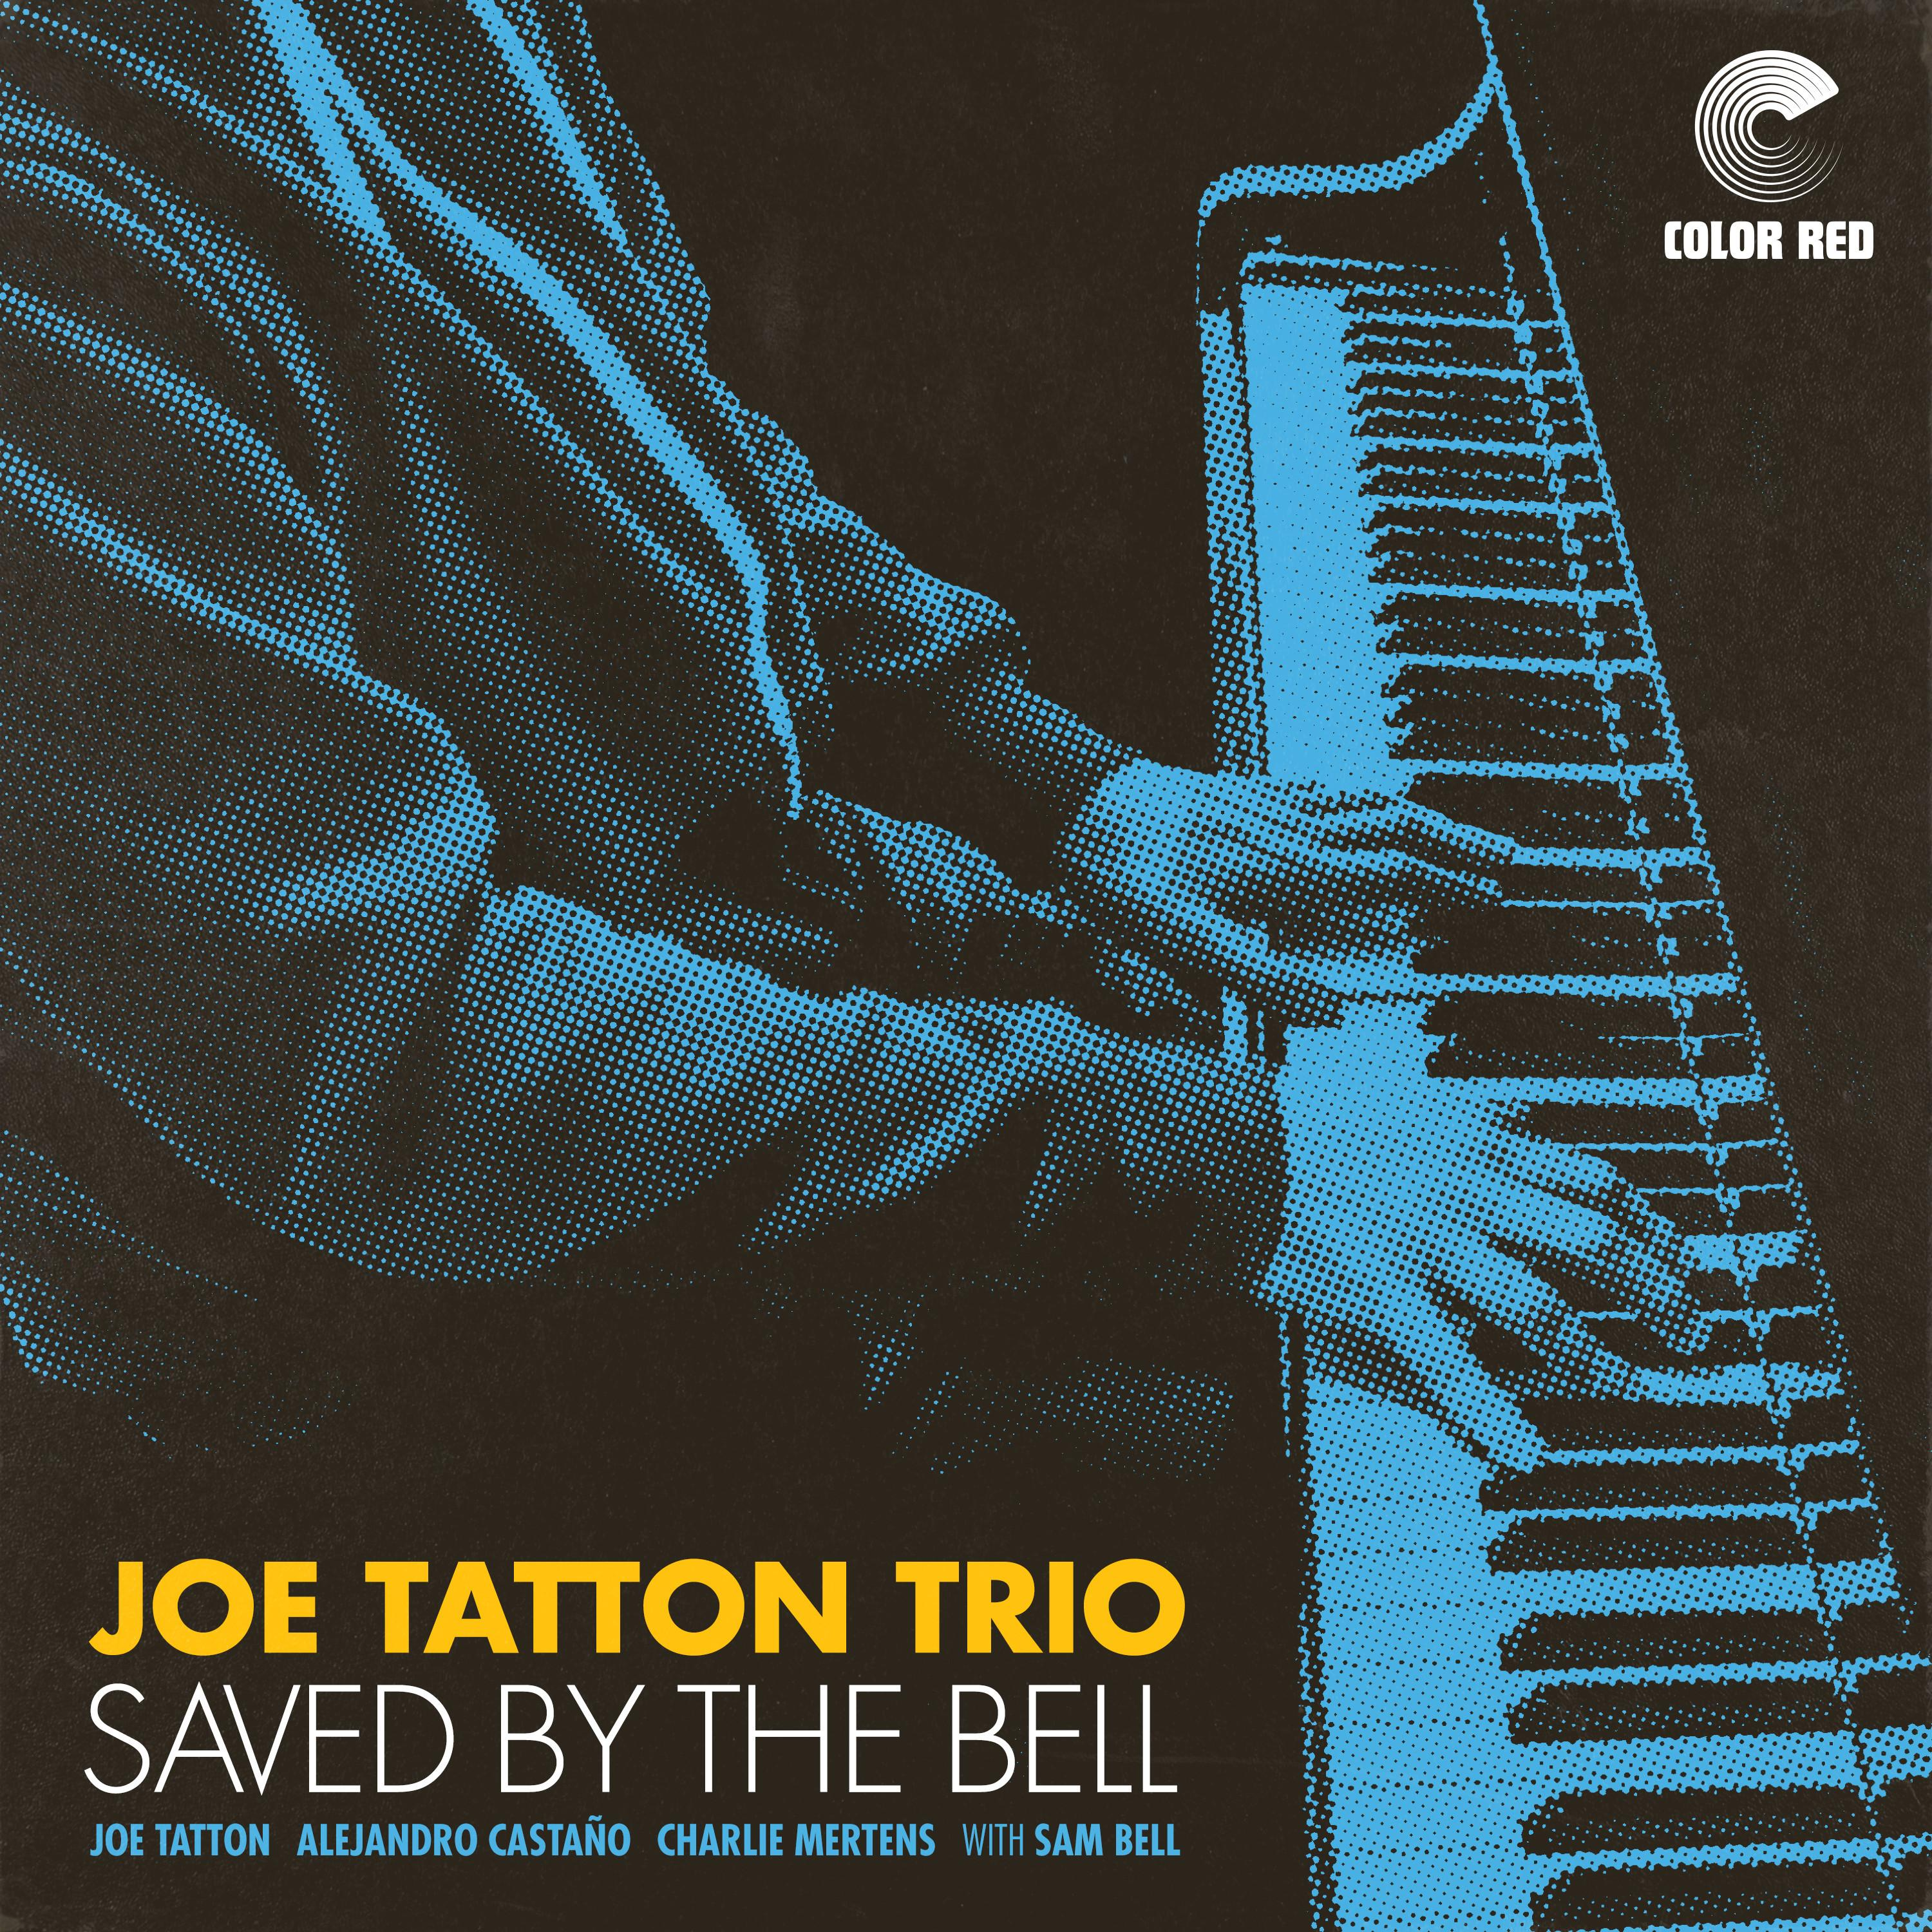 Joe Taton Trio Saved By The Bell Color Red Music